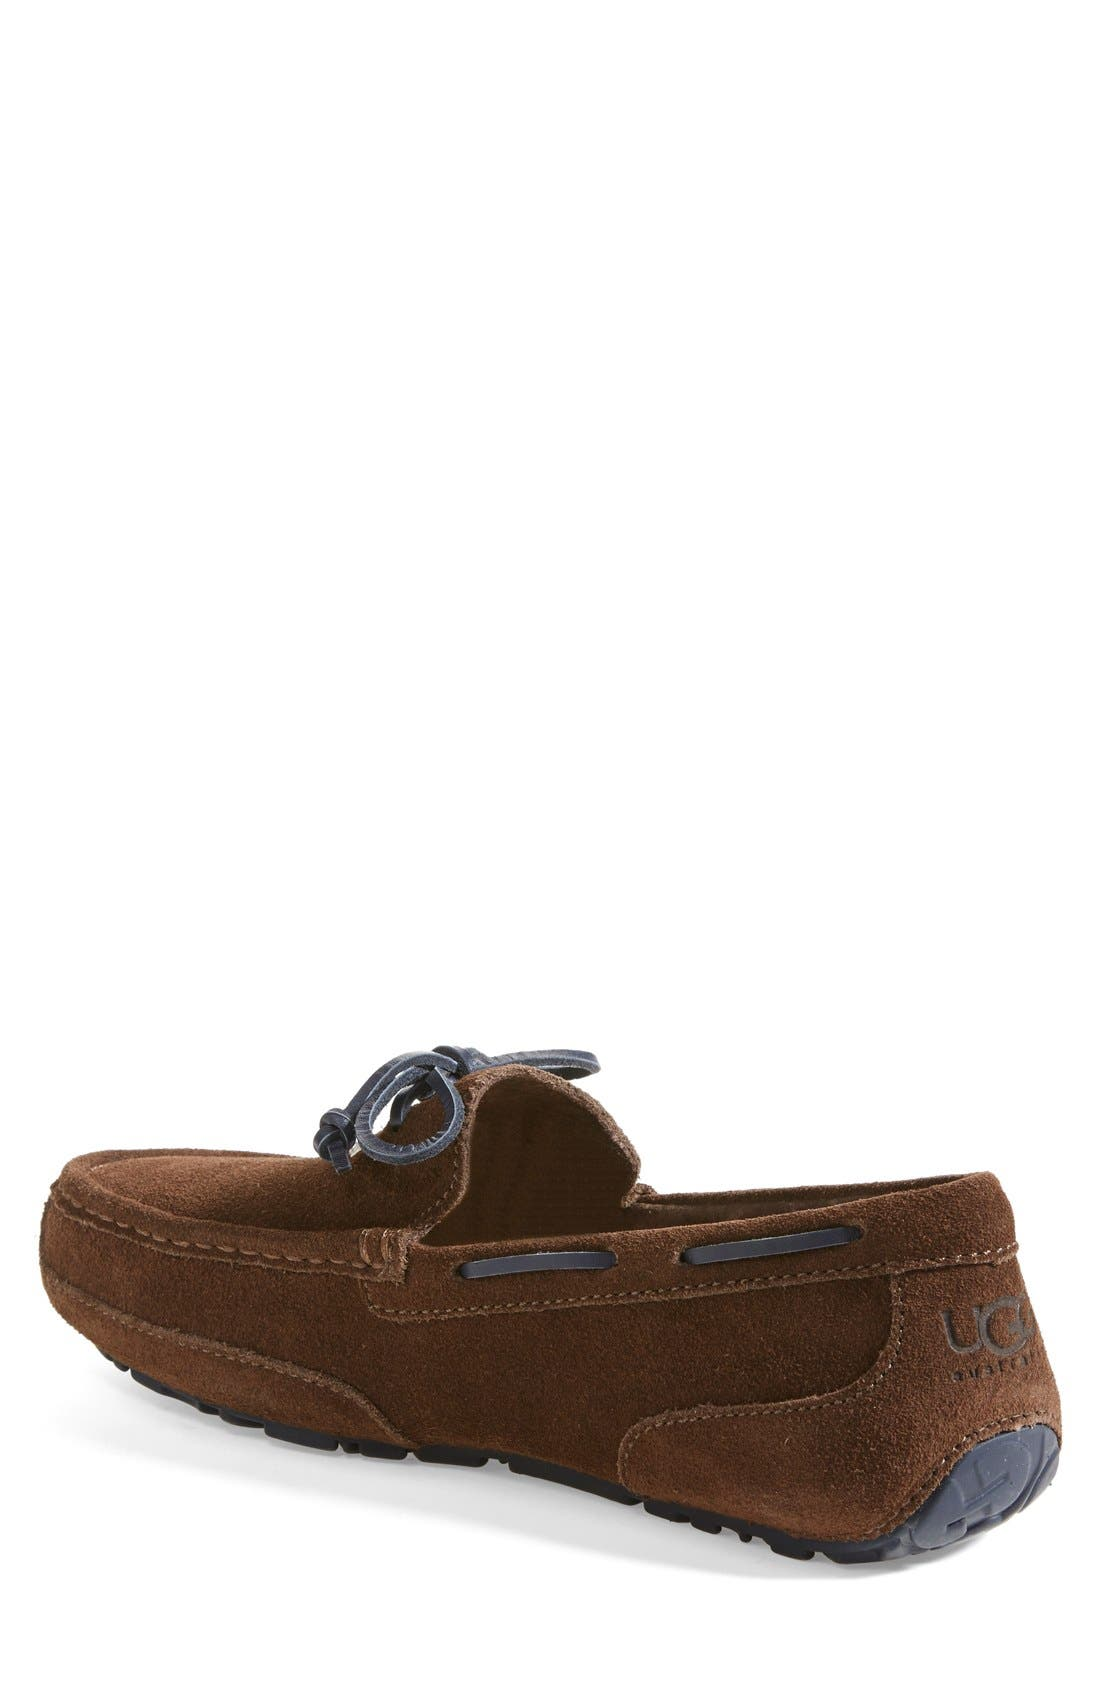 Alternate Image 2  - UGG® 'Chester' Driving Loafer (Men)